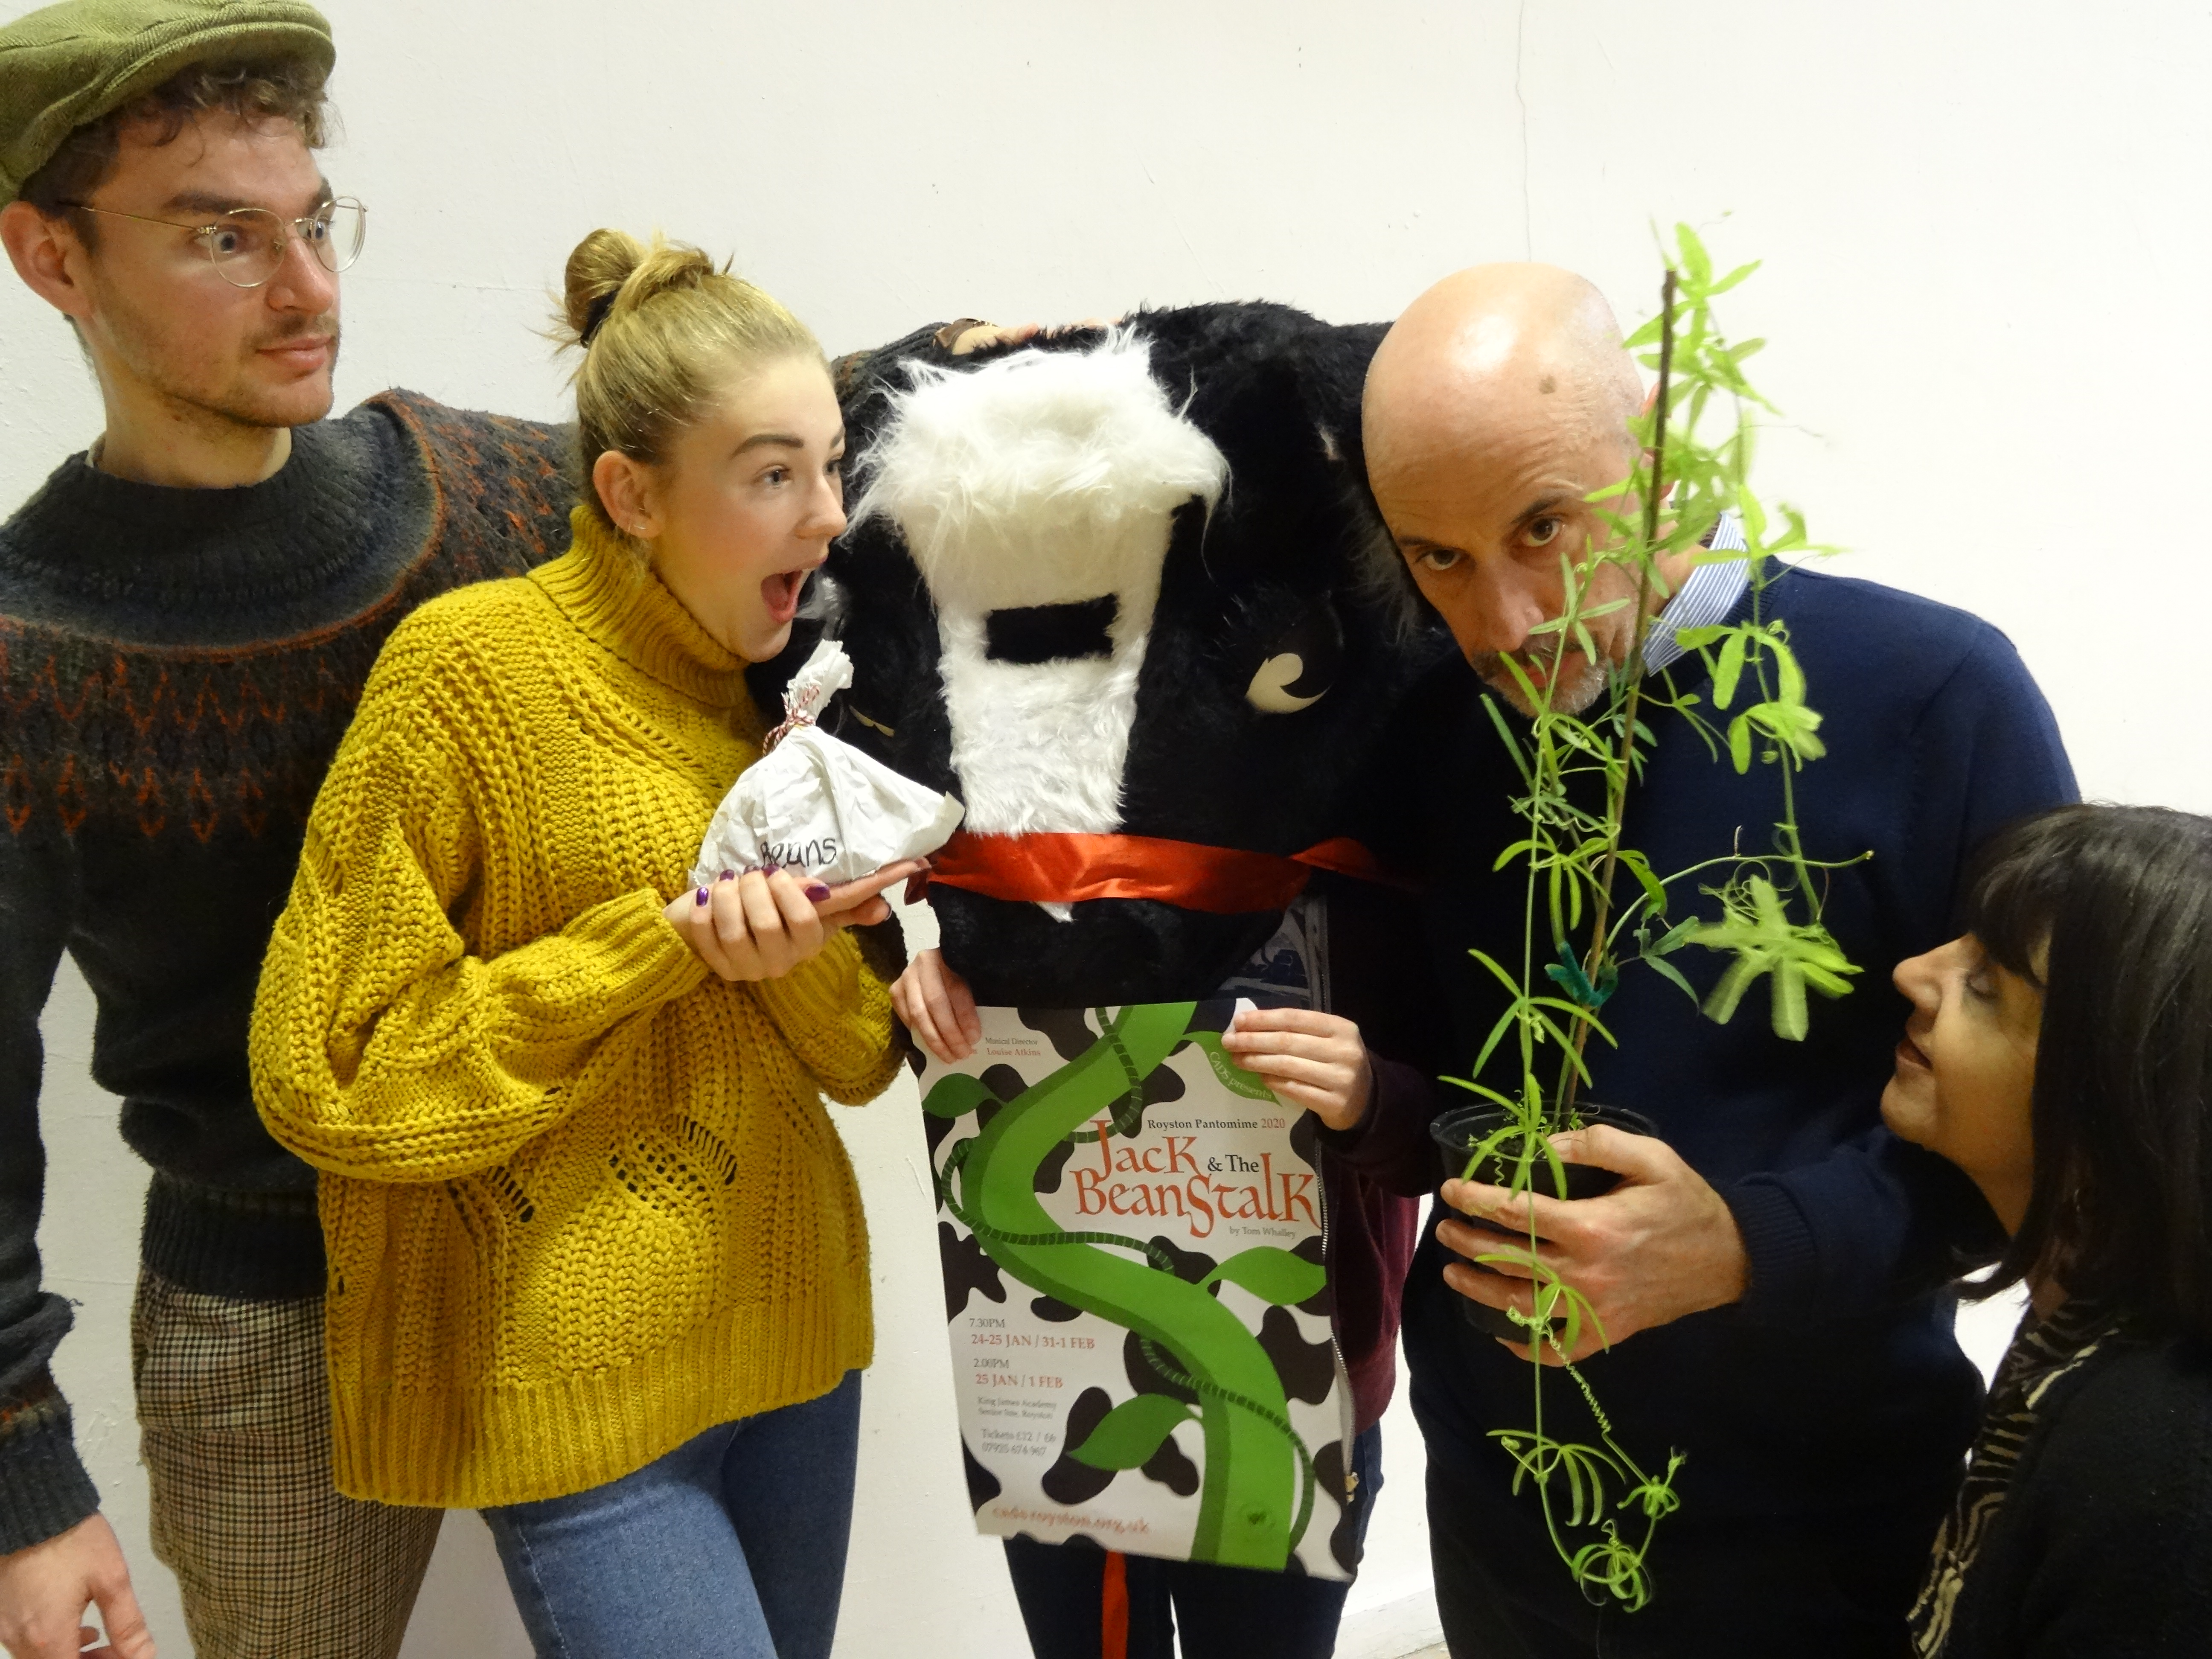 Out & About: CADS Present Jack & The Beanstalk!